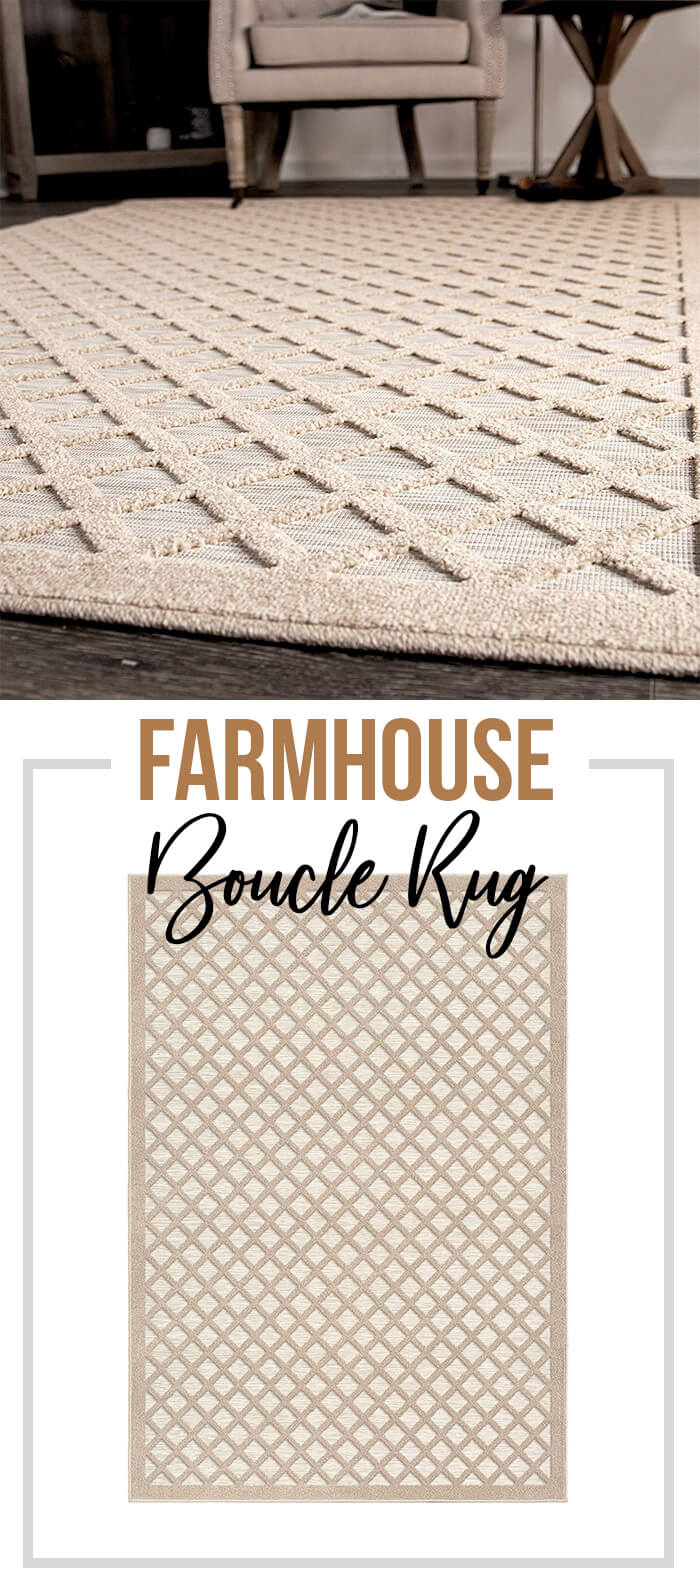 Indoor/Outdoor Farmhouse Boucle Area Rug